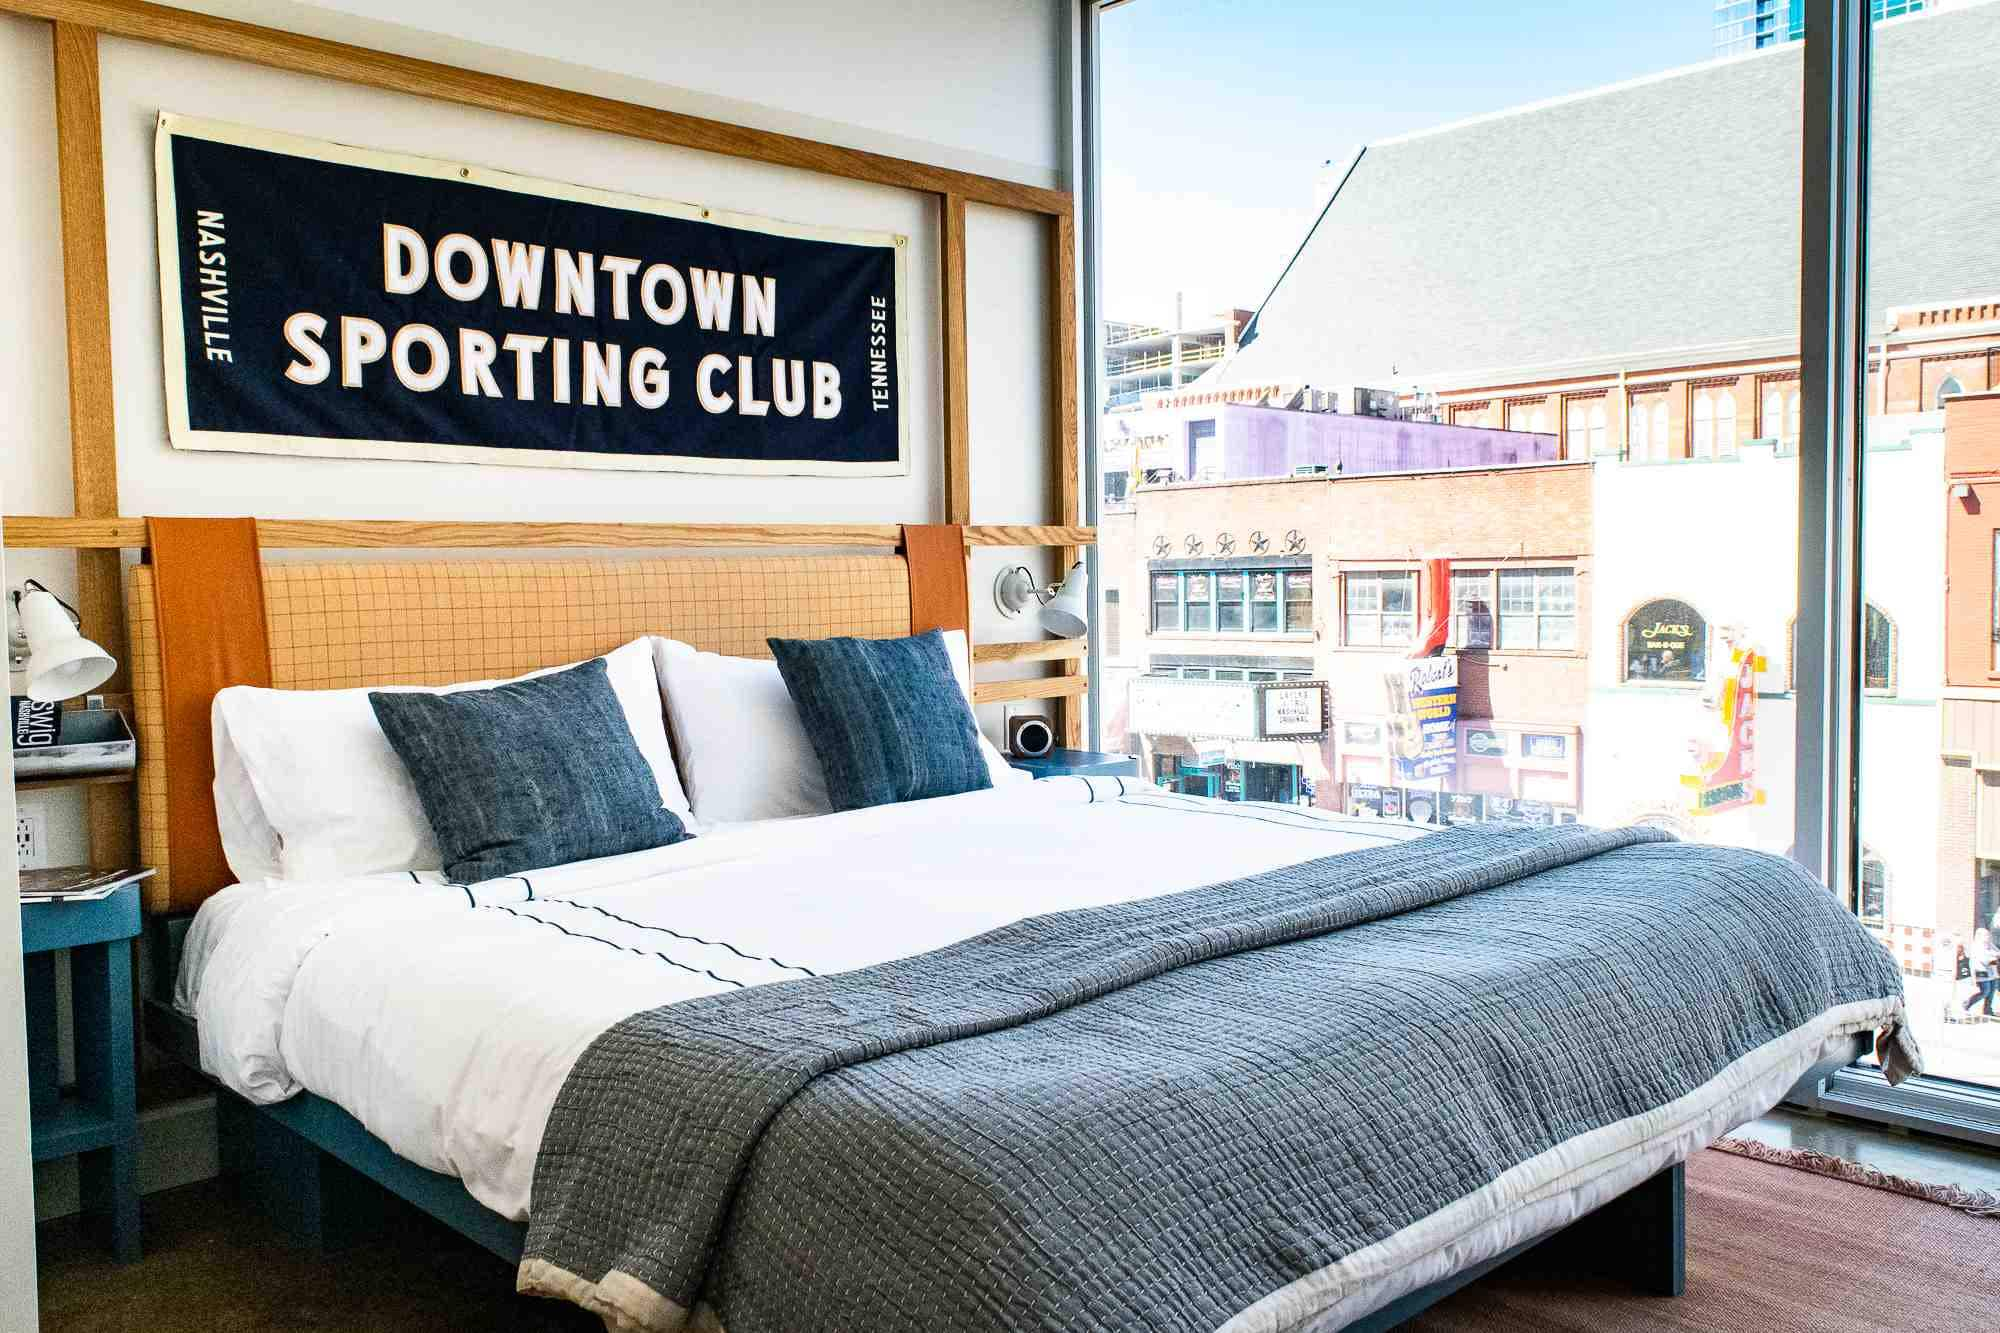 Fancy a bit of axe-throwing before hitting the rooftop bar? Stay at this new Nashville hotel